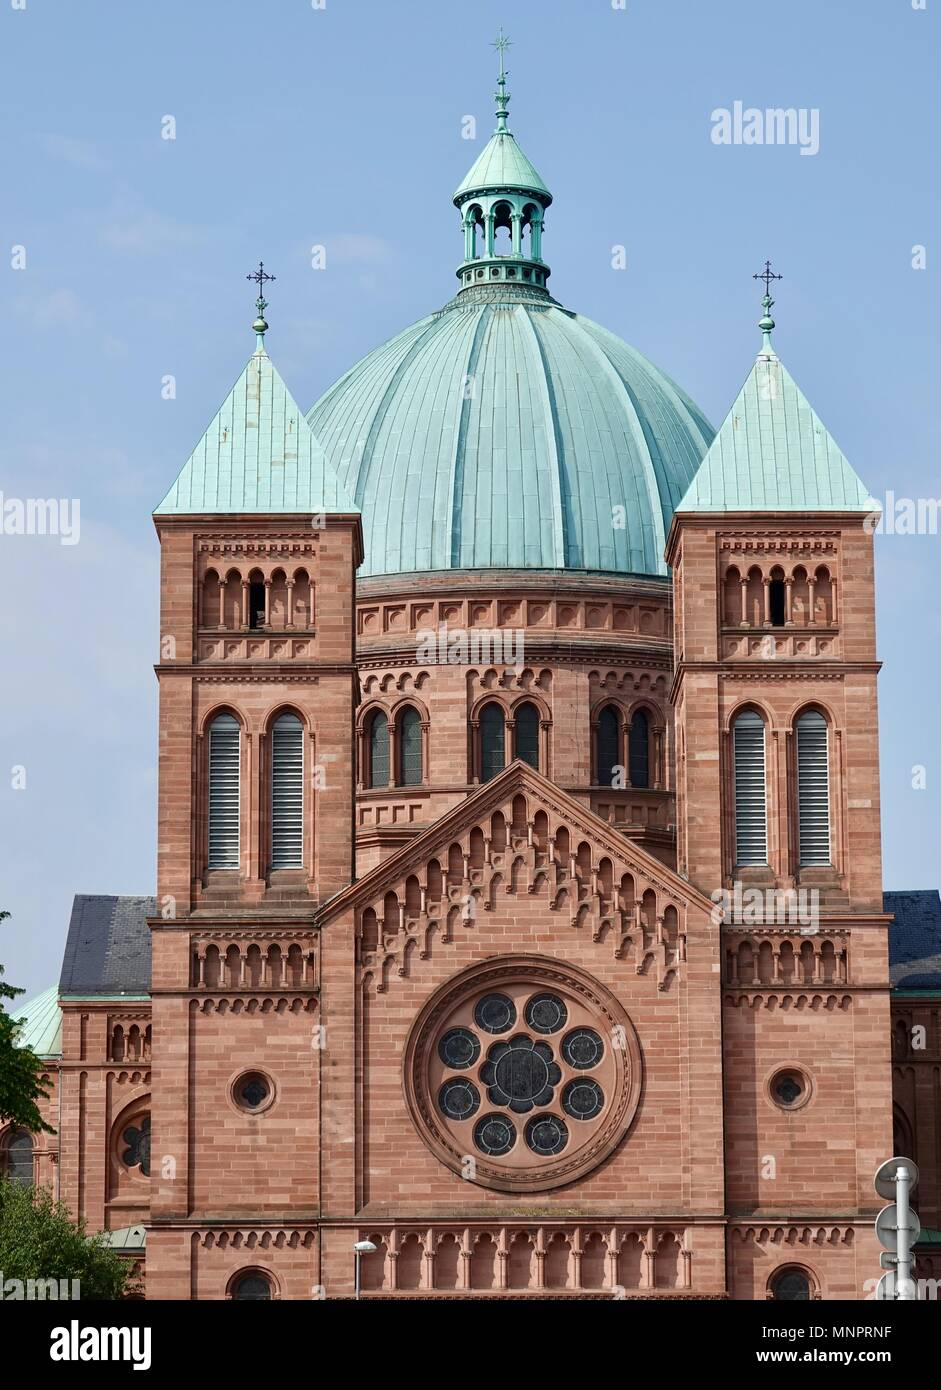 St. Peter the Younger Catholic Church, Strasbourg, France - Stock Image